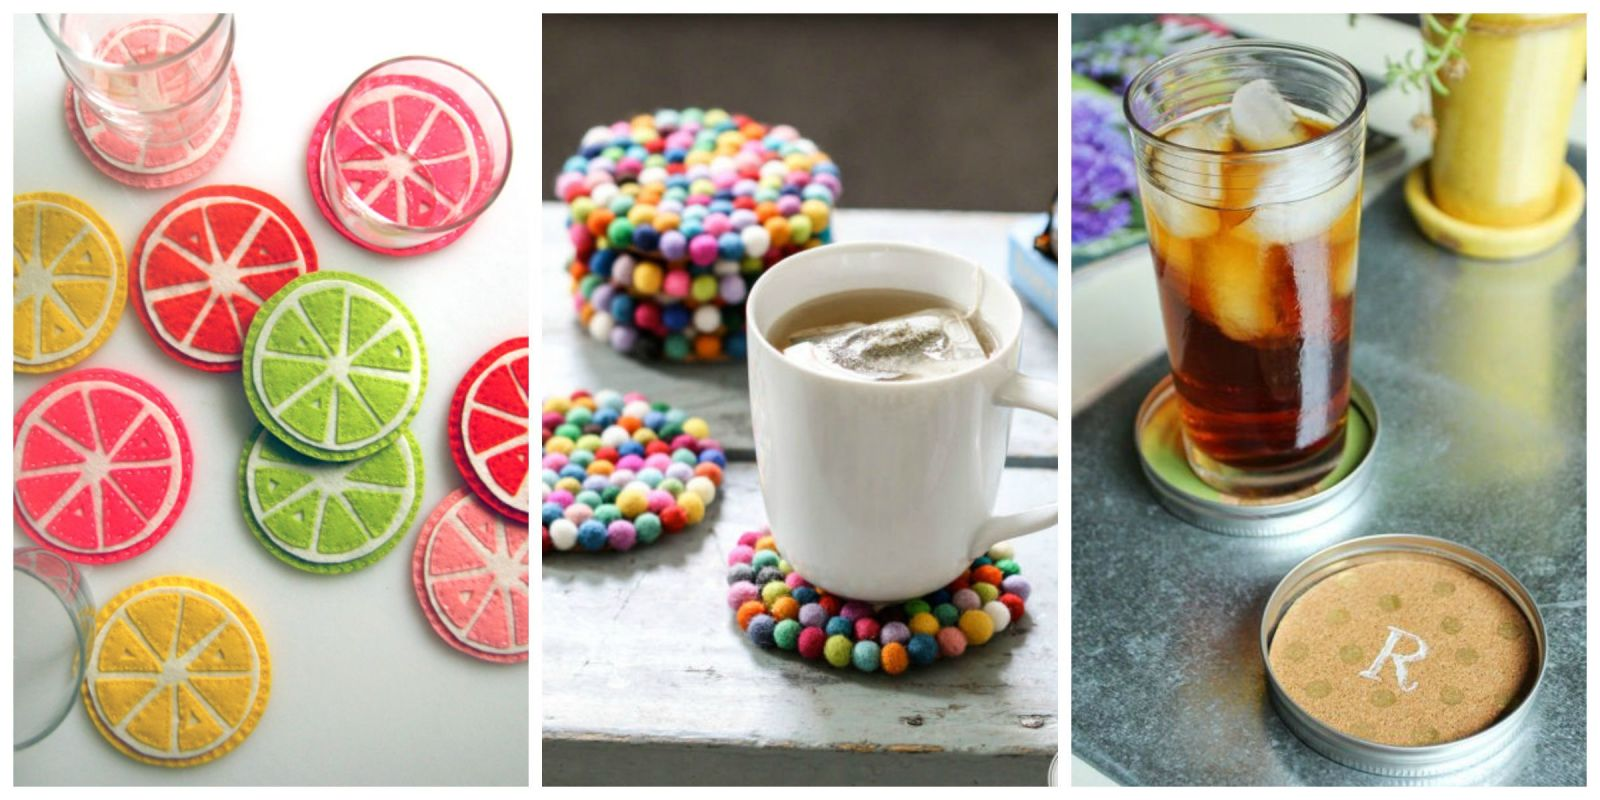 Diy coasters drink coasters for Homemade coaster ideas